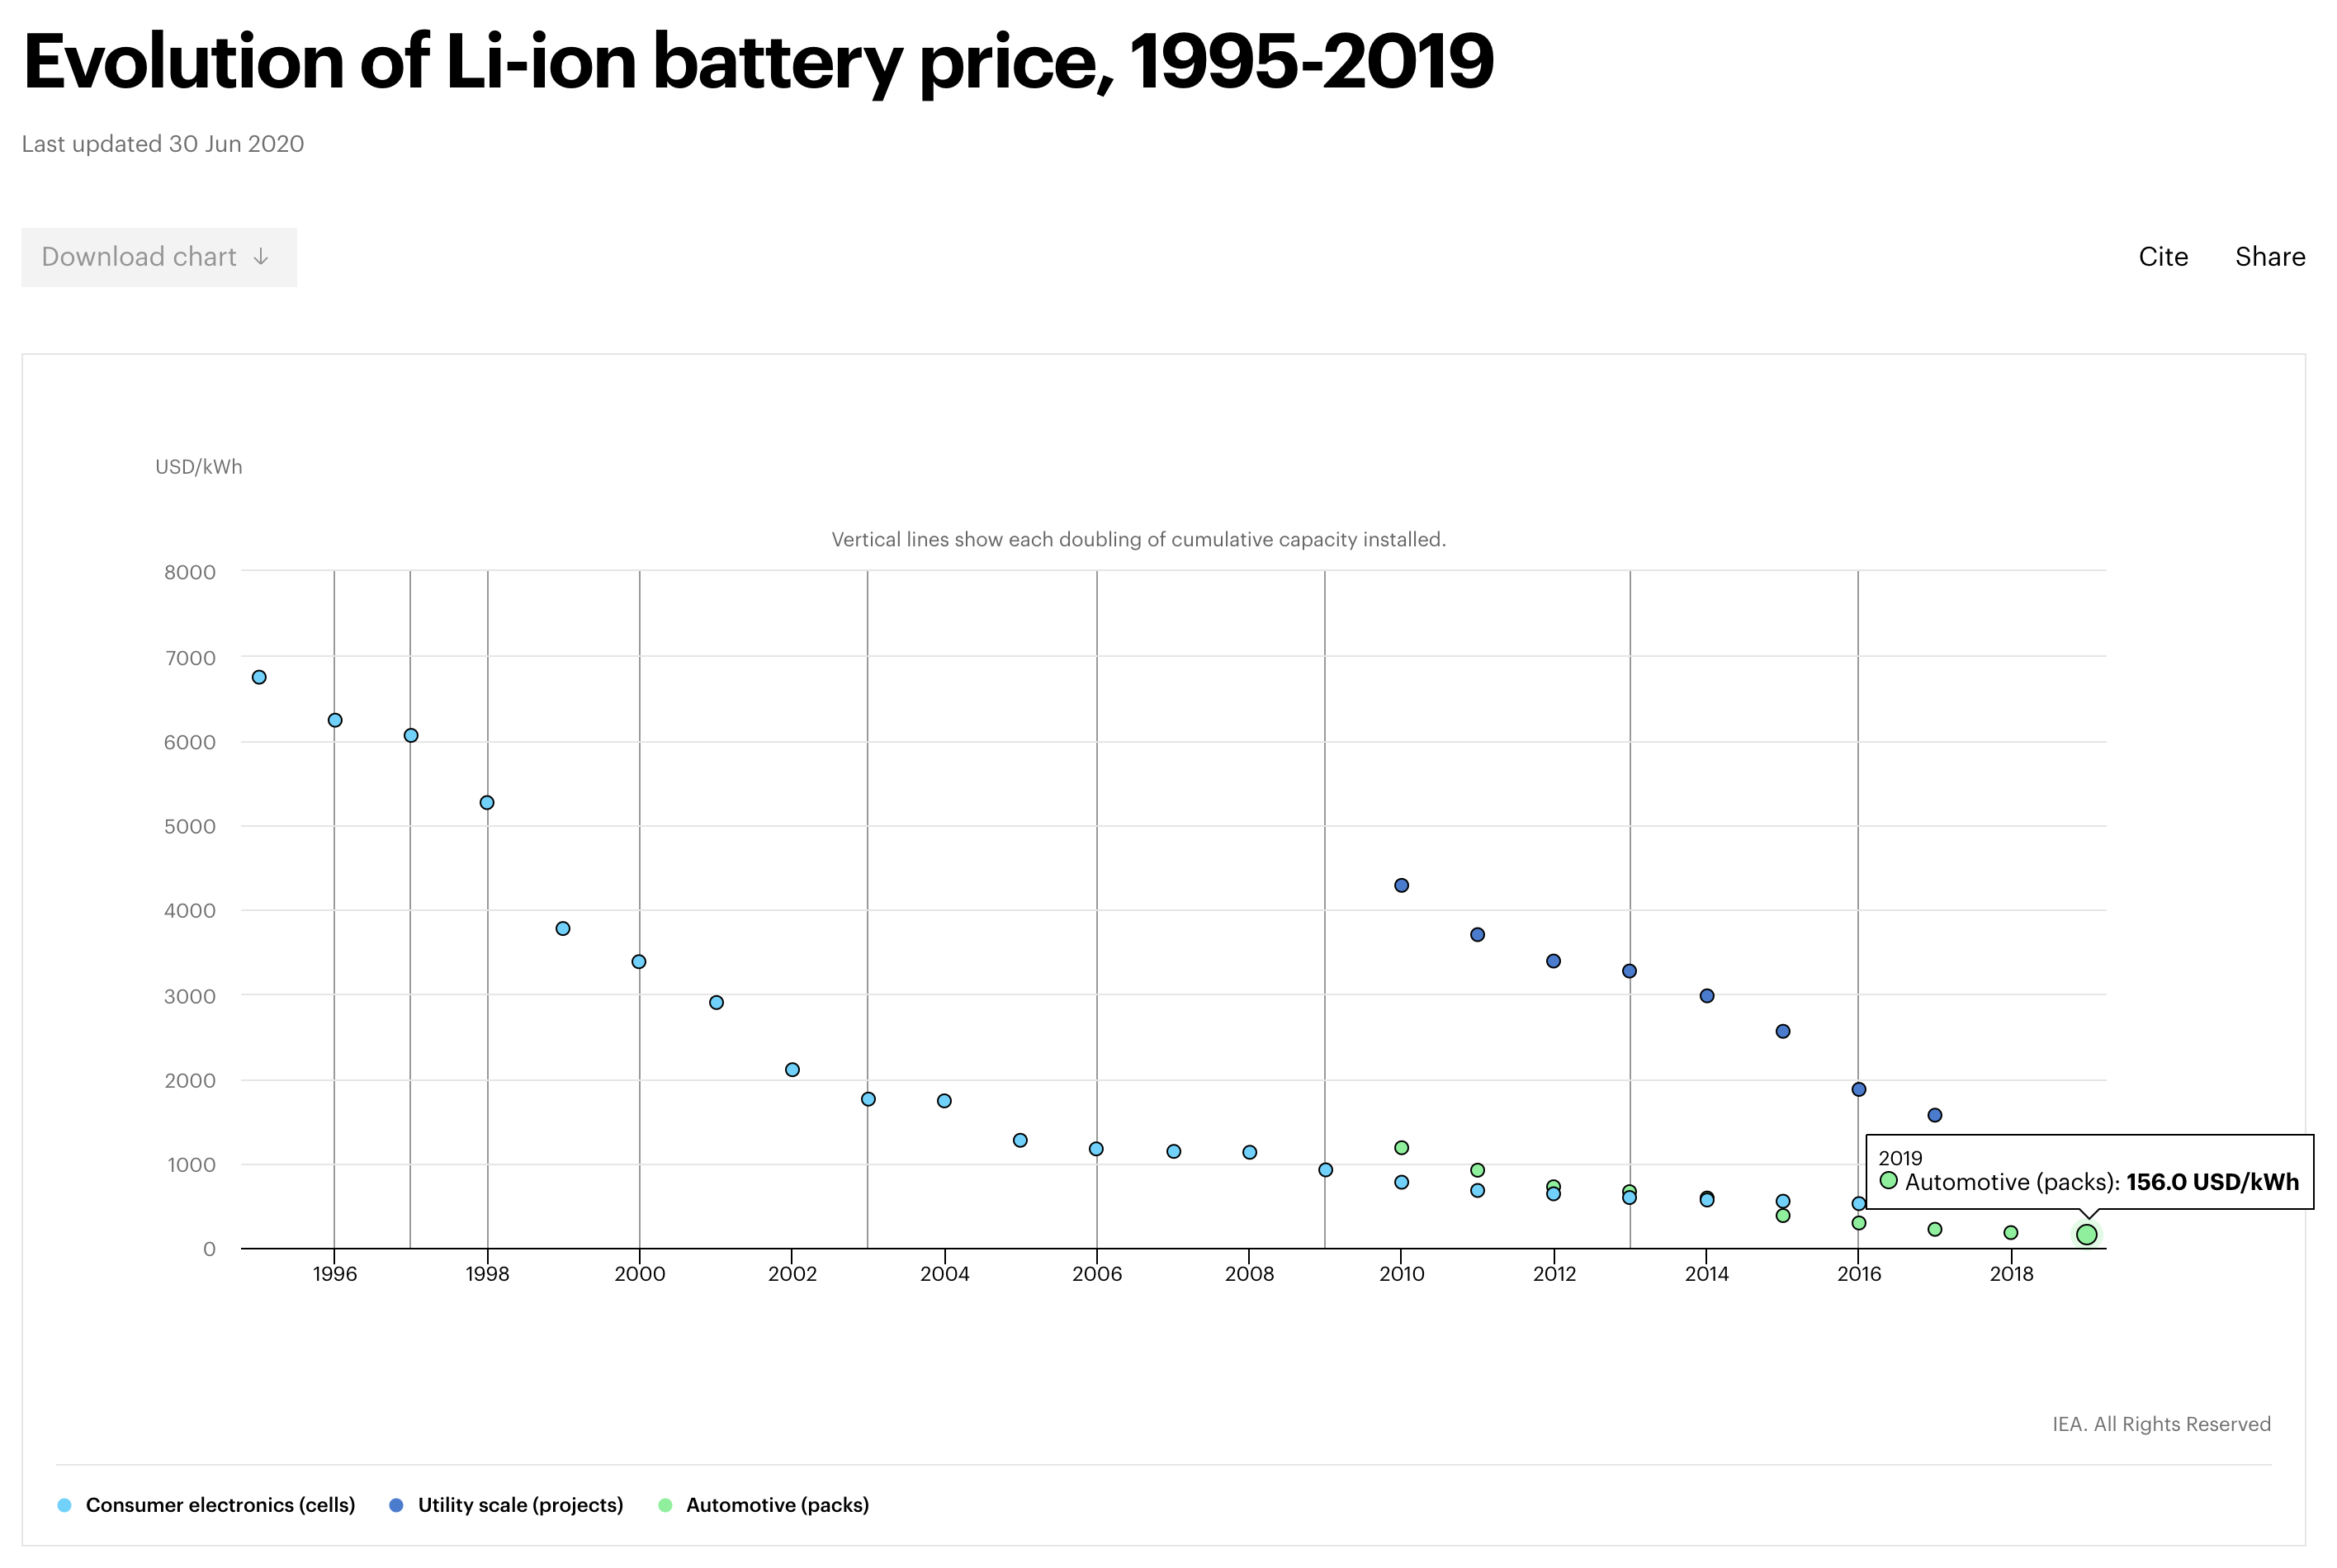 Lithium-ion battery pack costs trend 2019